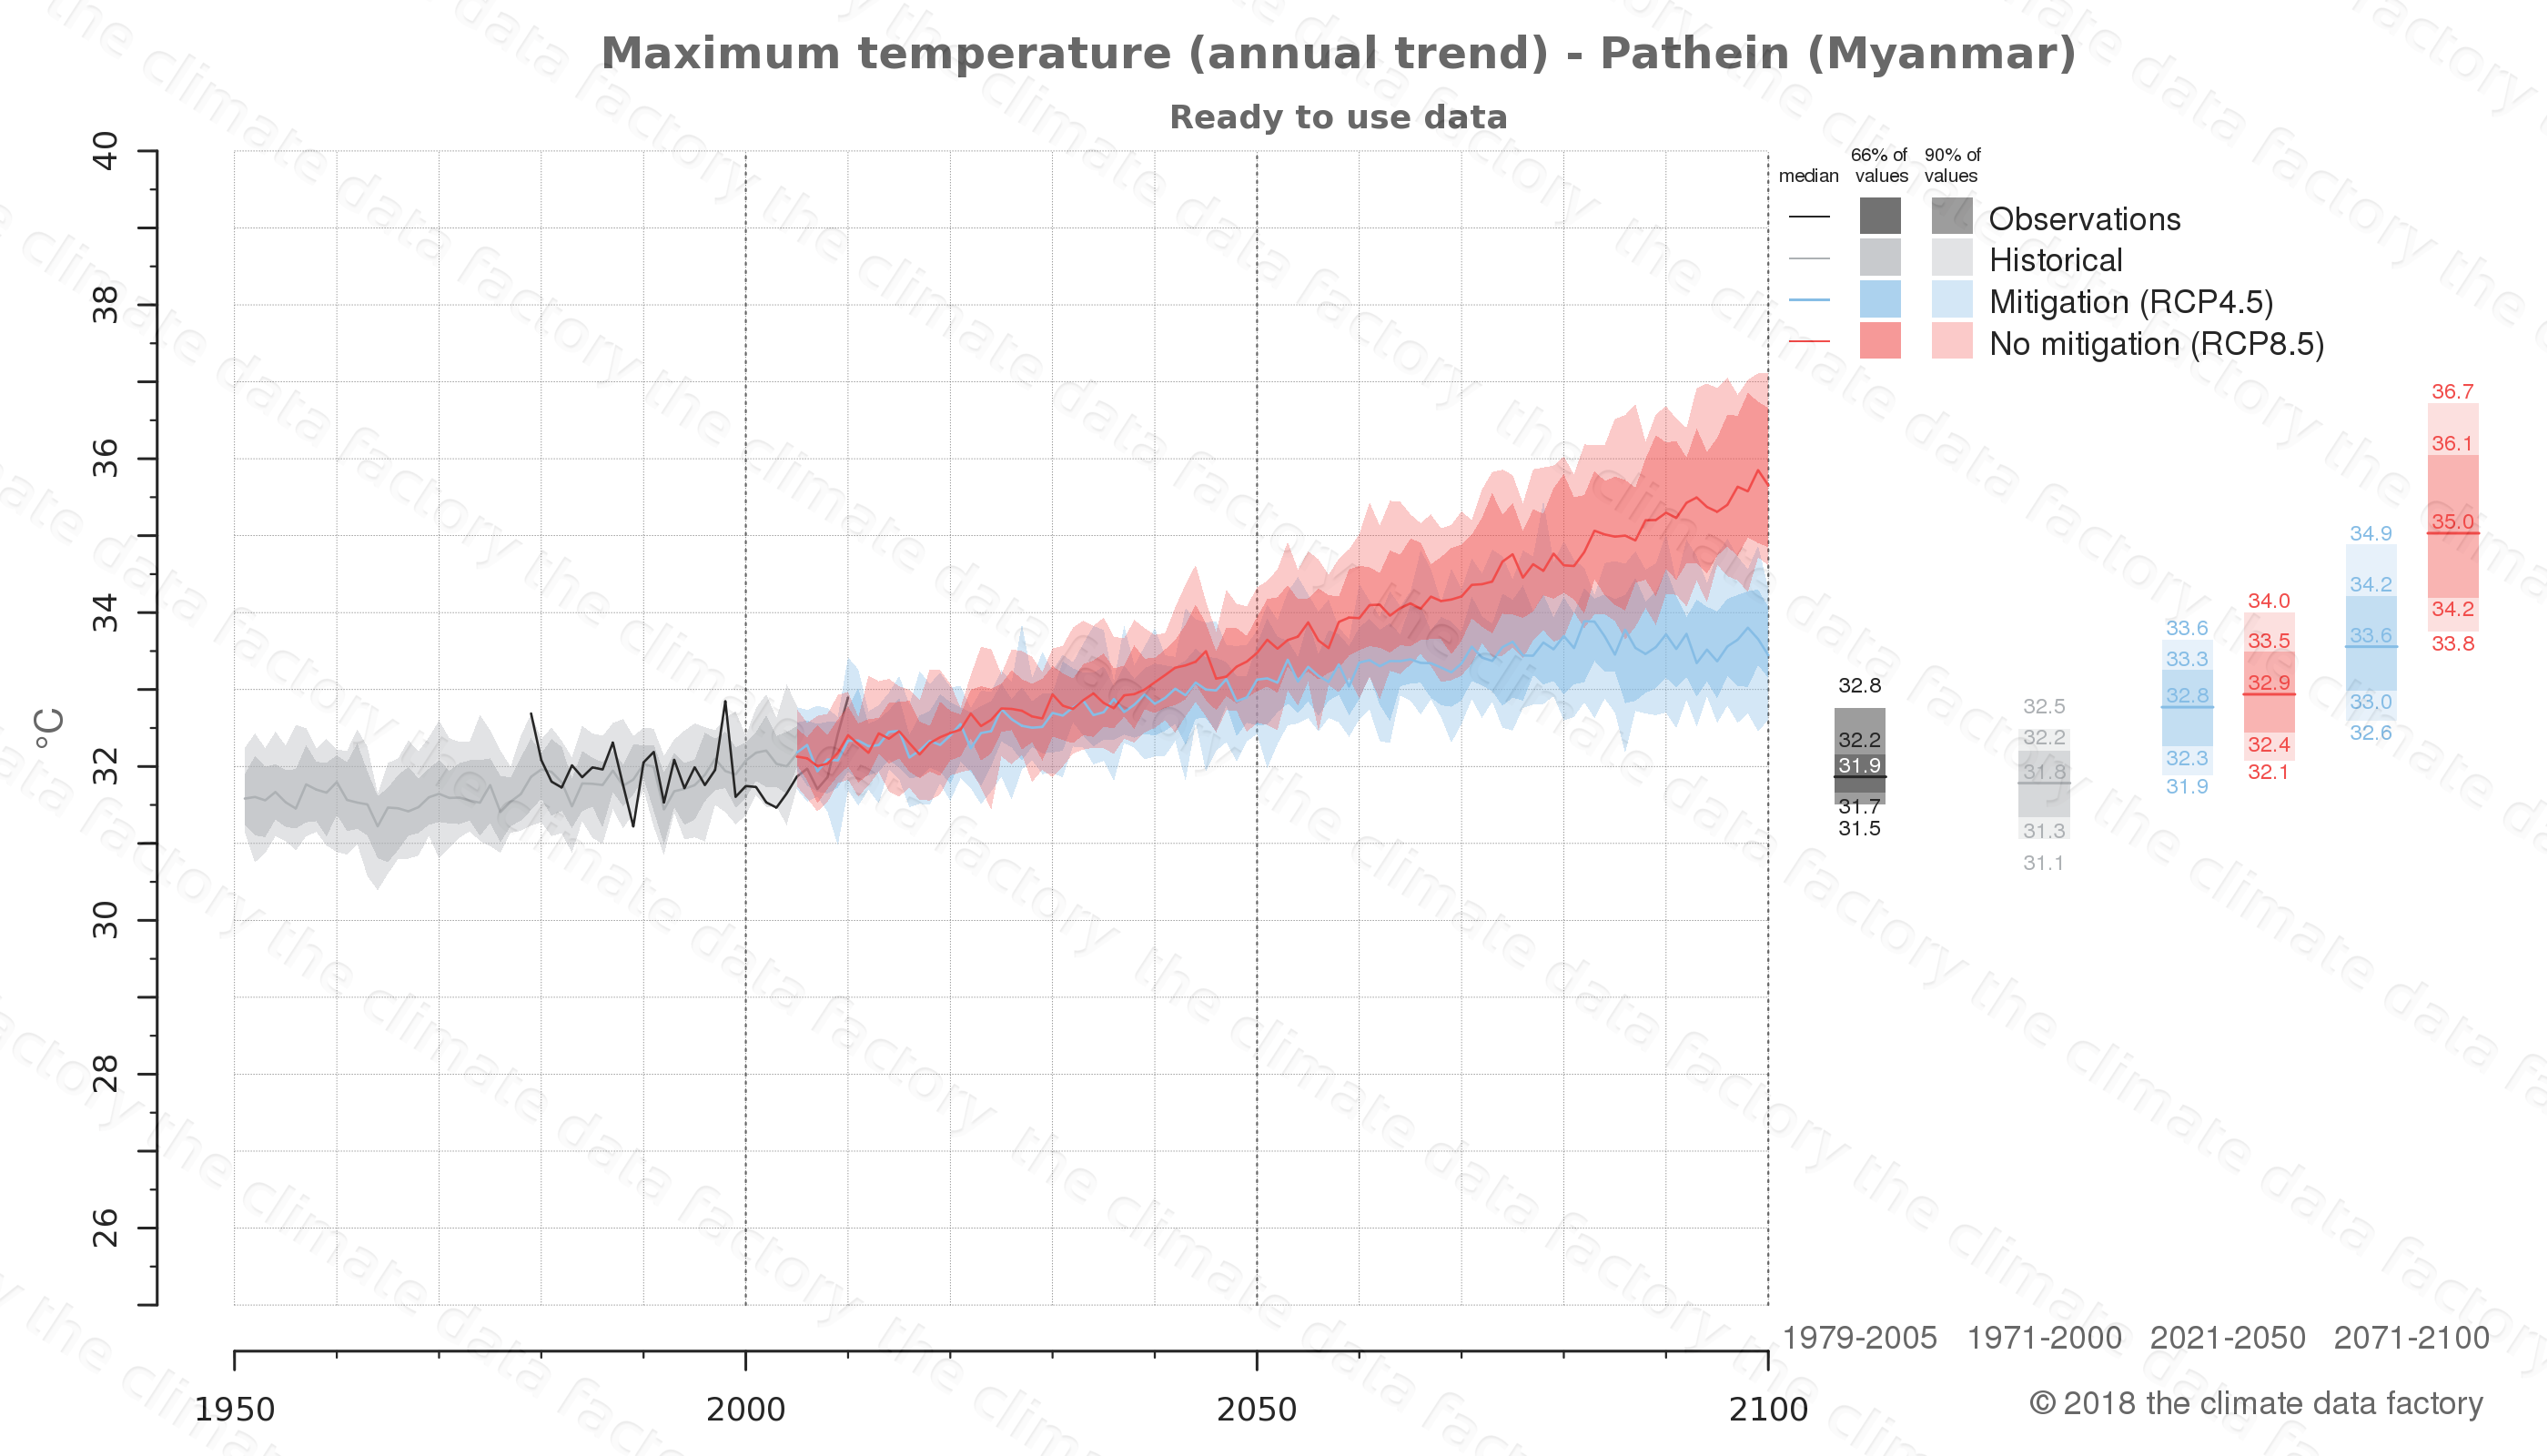 climate change data policy adaptation climate graph city data maximum-temperature pathein myanmar